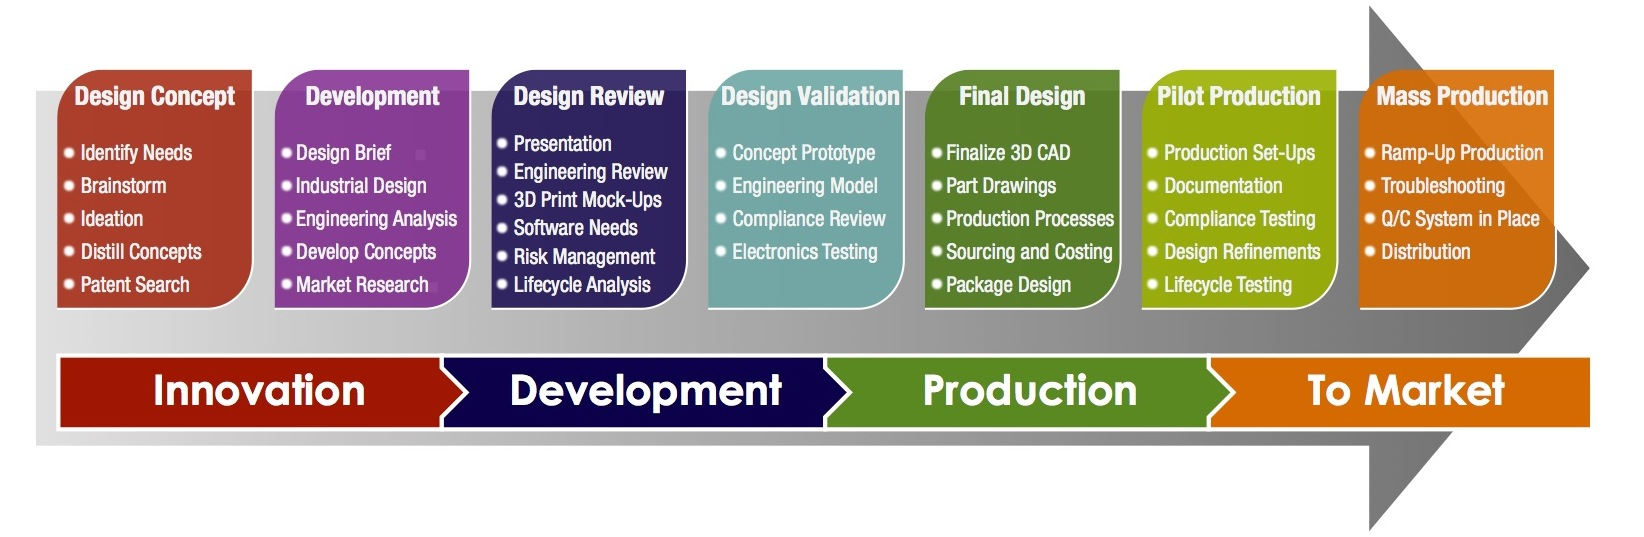 Designsprings Approach To Product Development